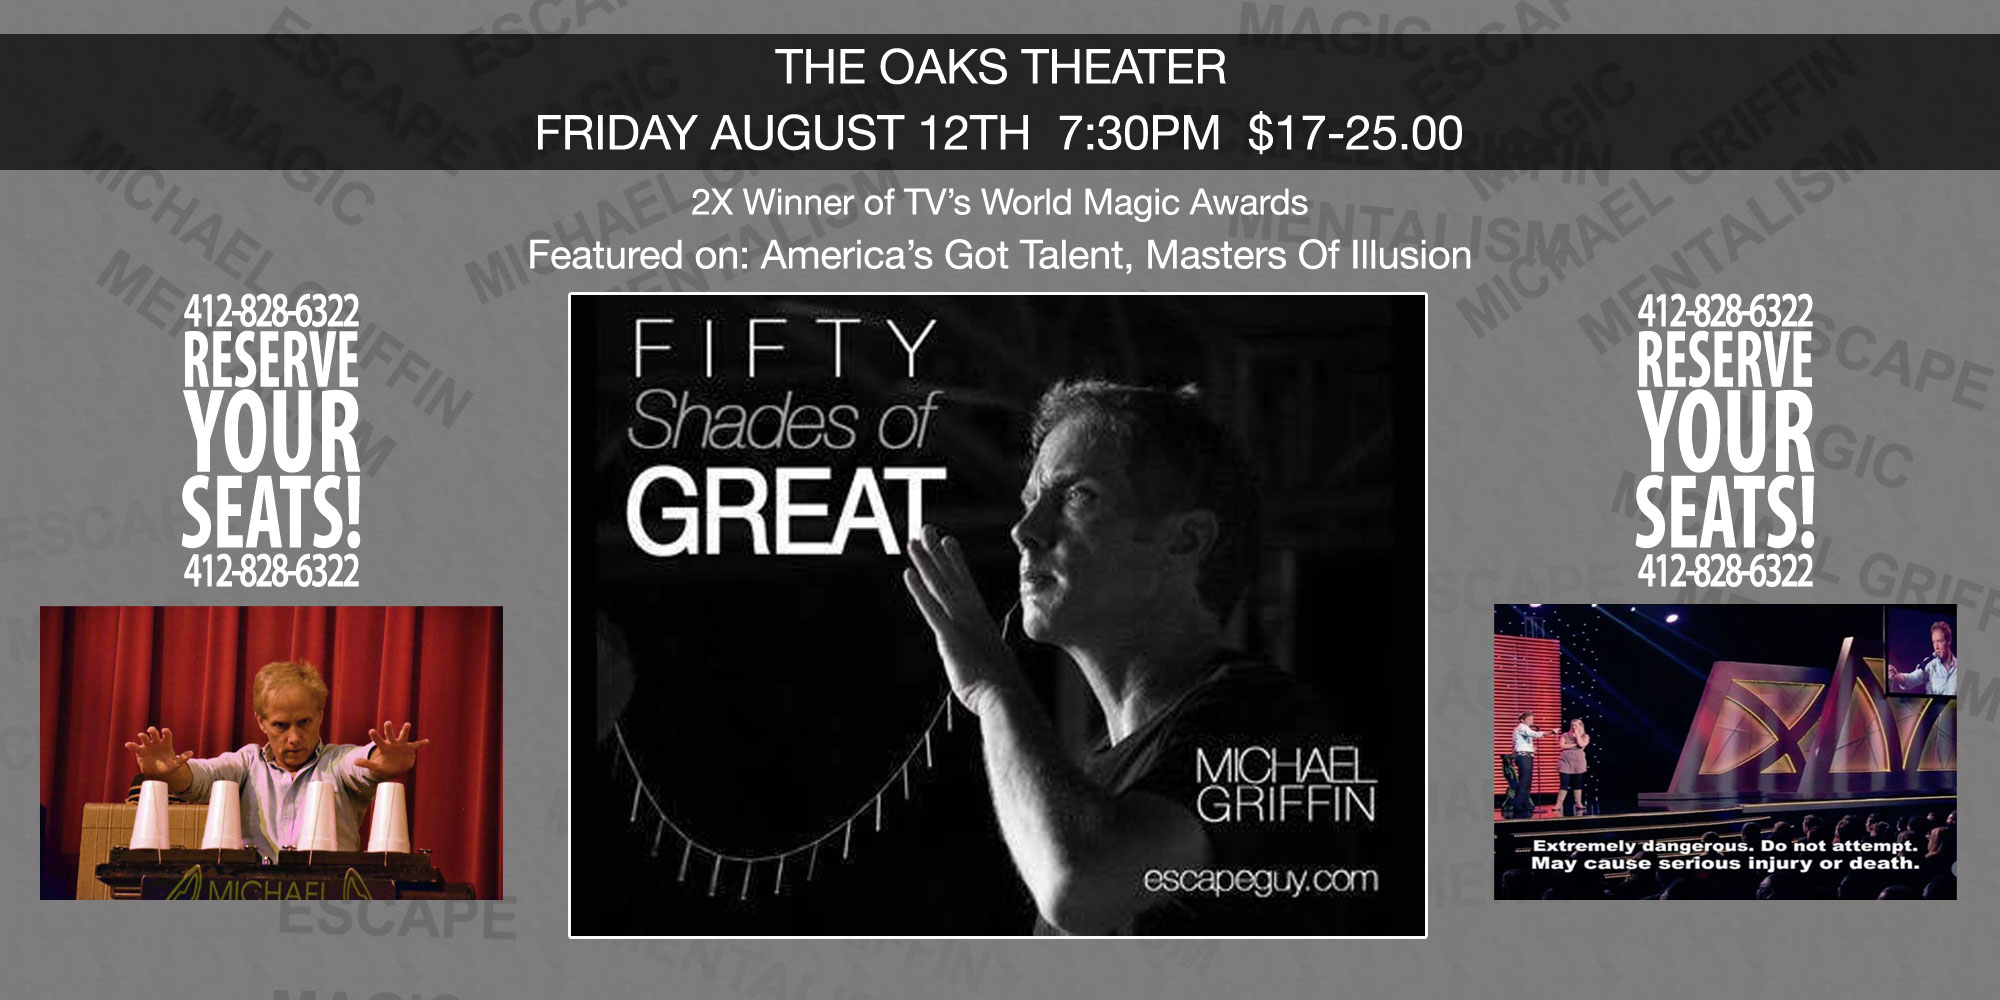 Michael Griffin Escape Artist 50 Shades Of Great Magic Show